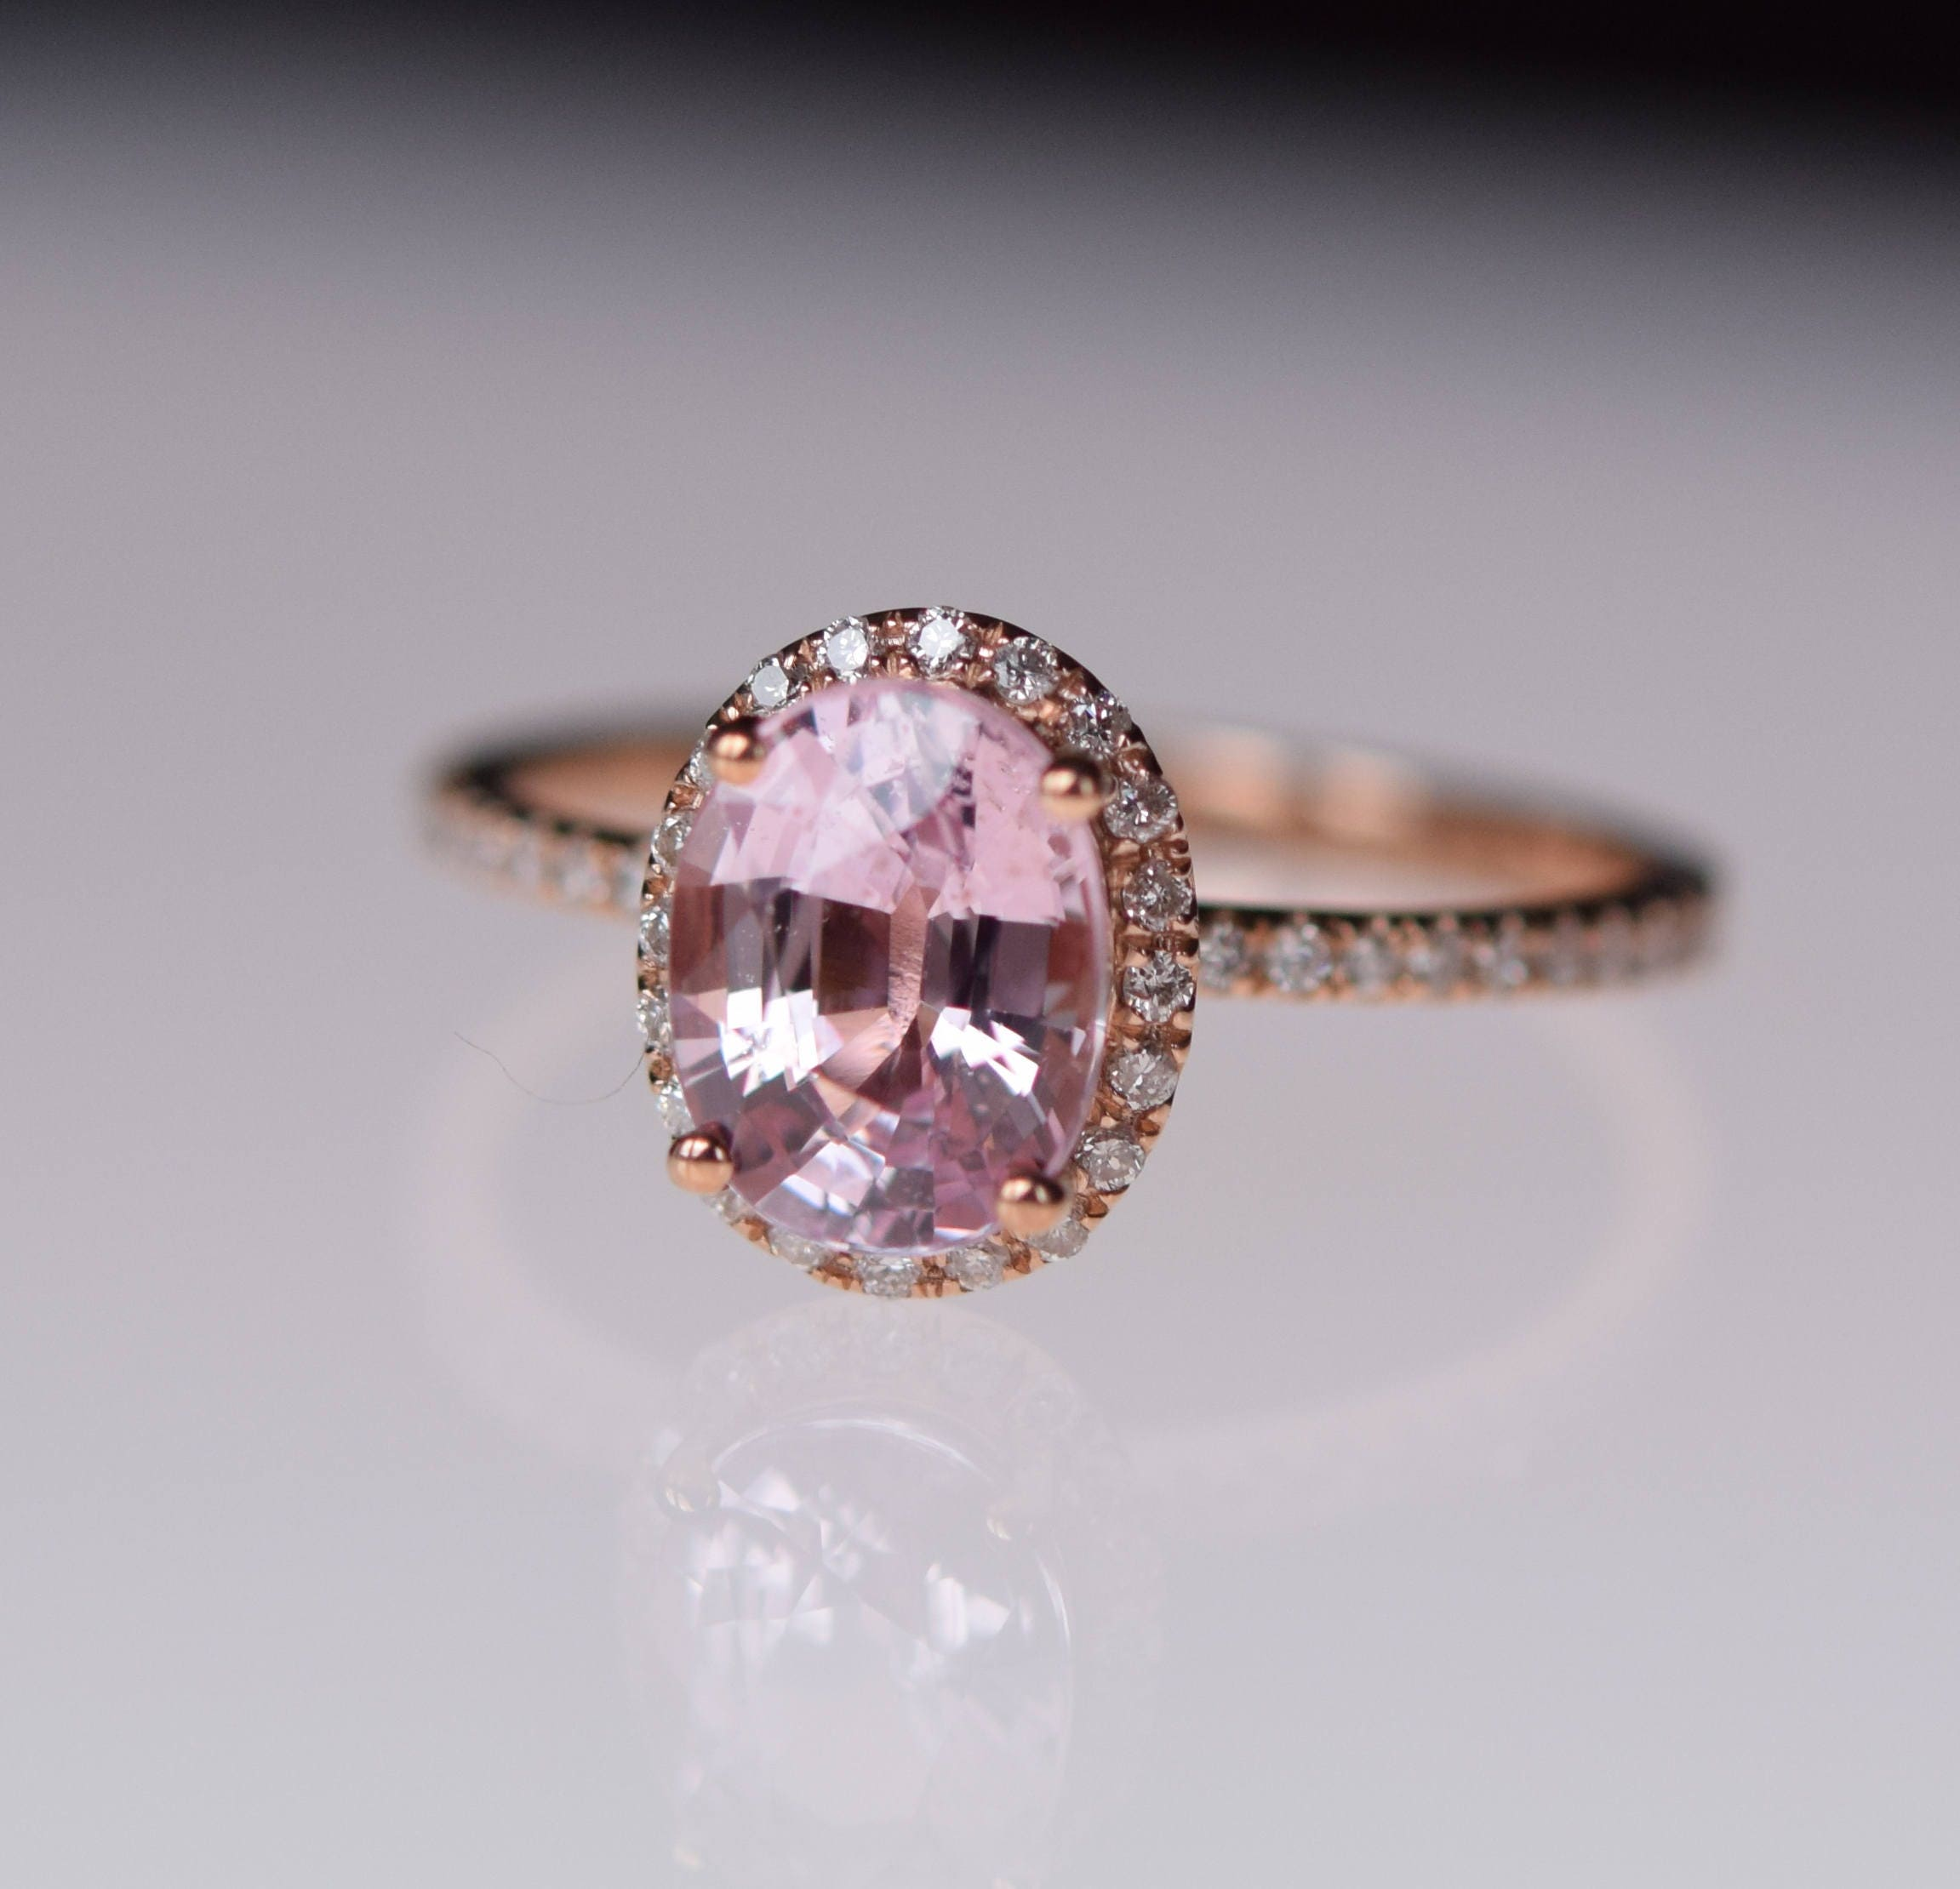 org engagement light deco vintage pear shaped halo unheated sapphire products art diamond rose gold peach ring